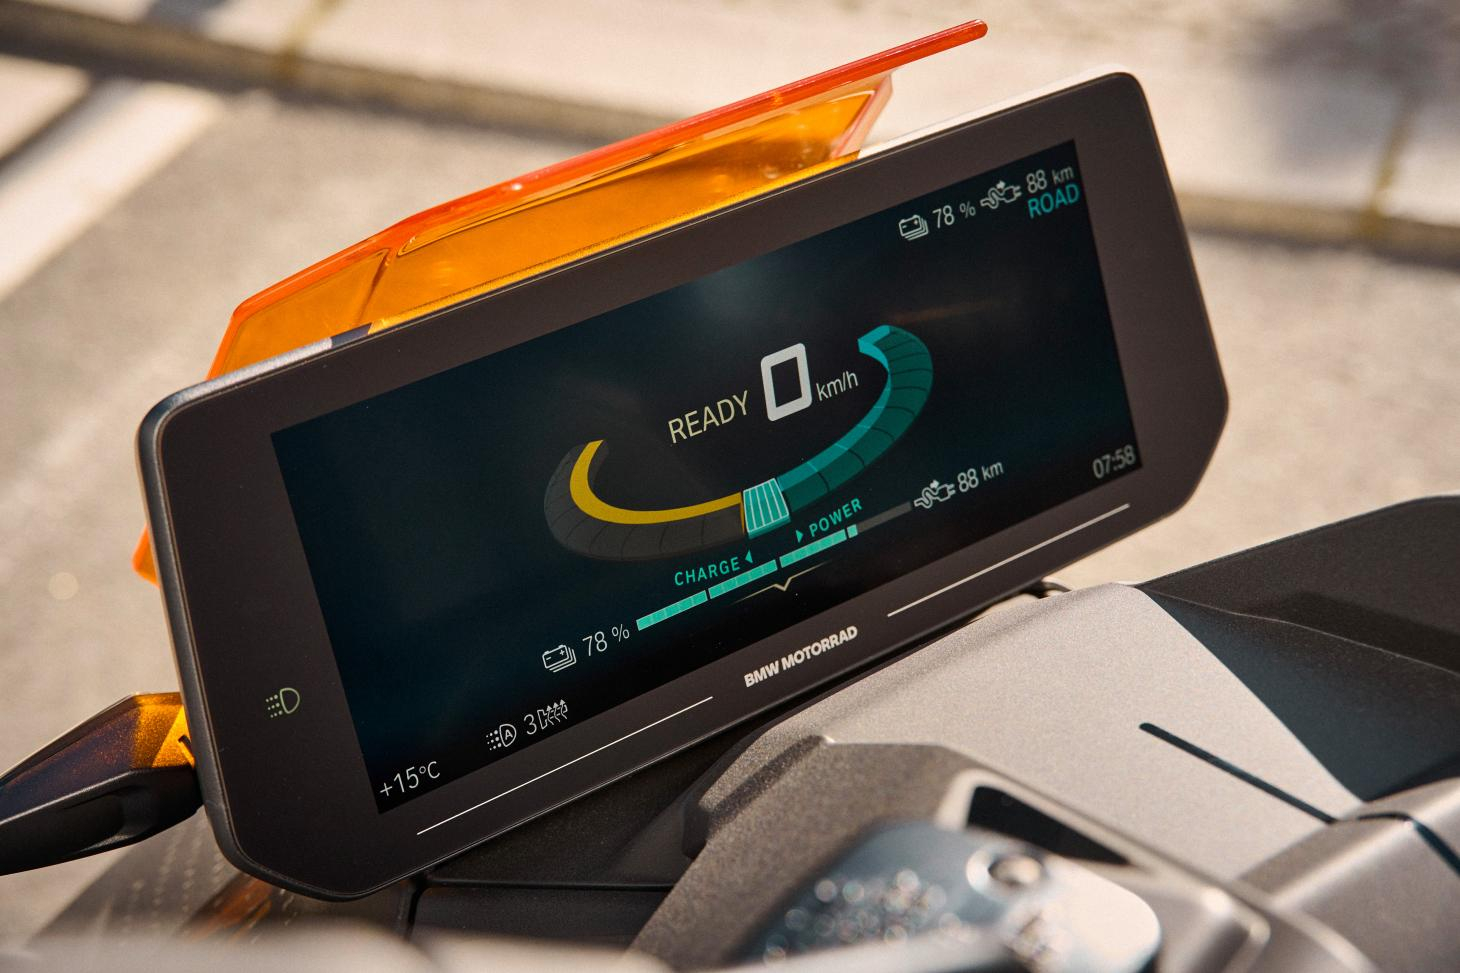 The new BMW Motorrad CE 04 Electric Scooter's display screen